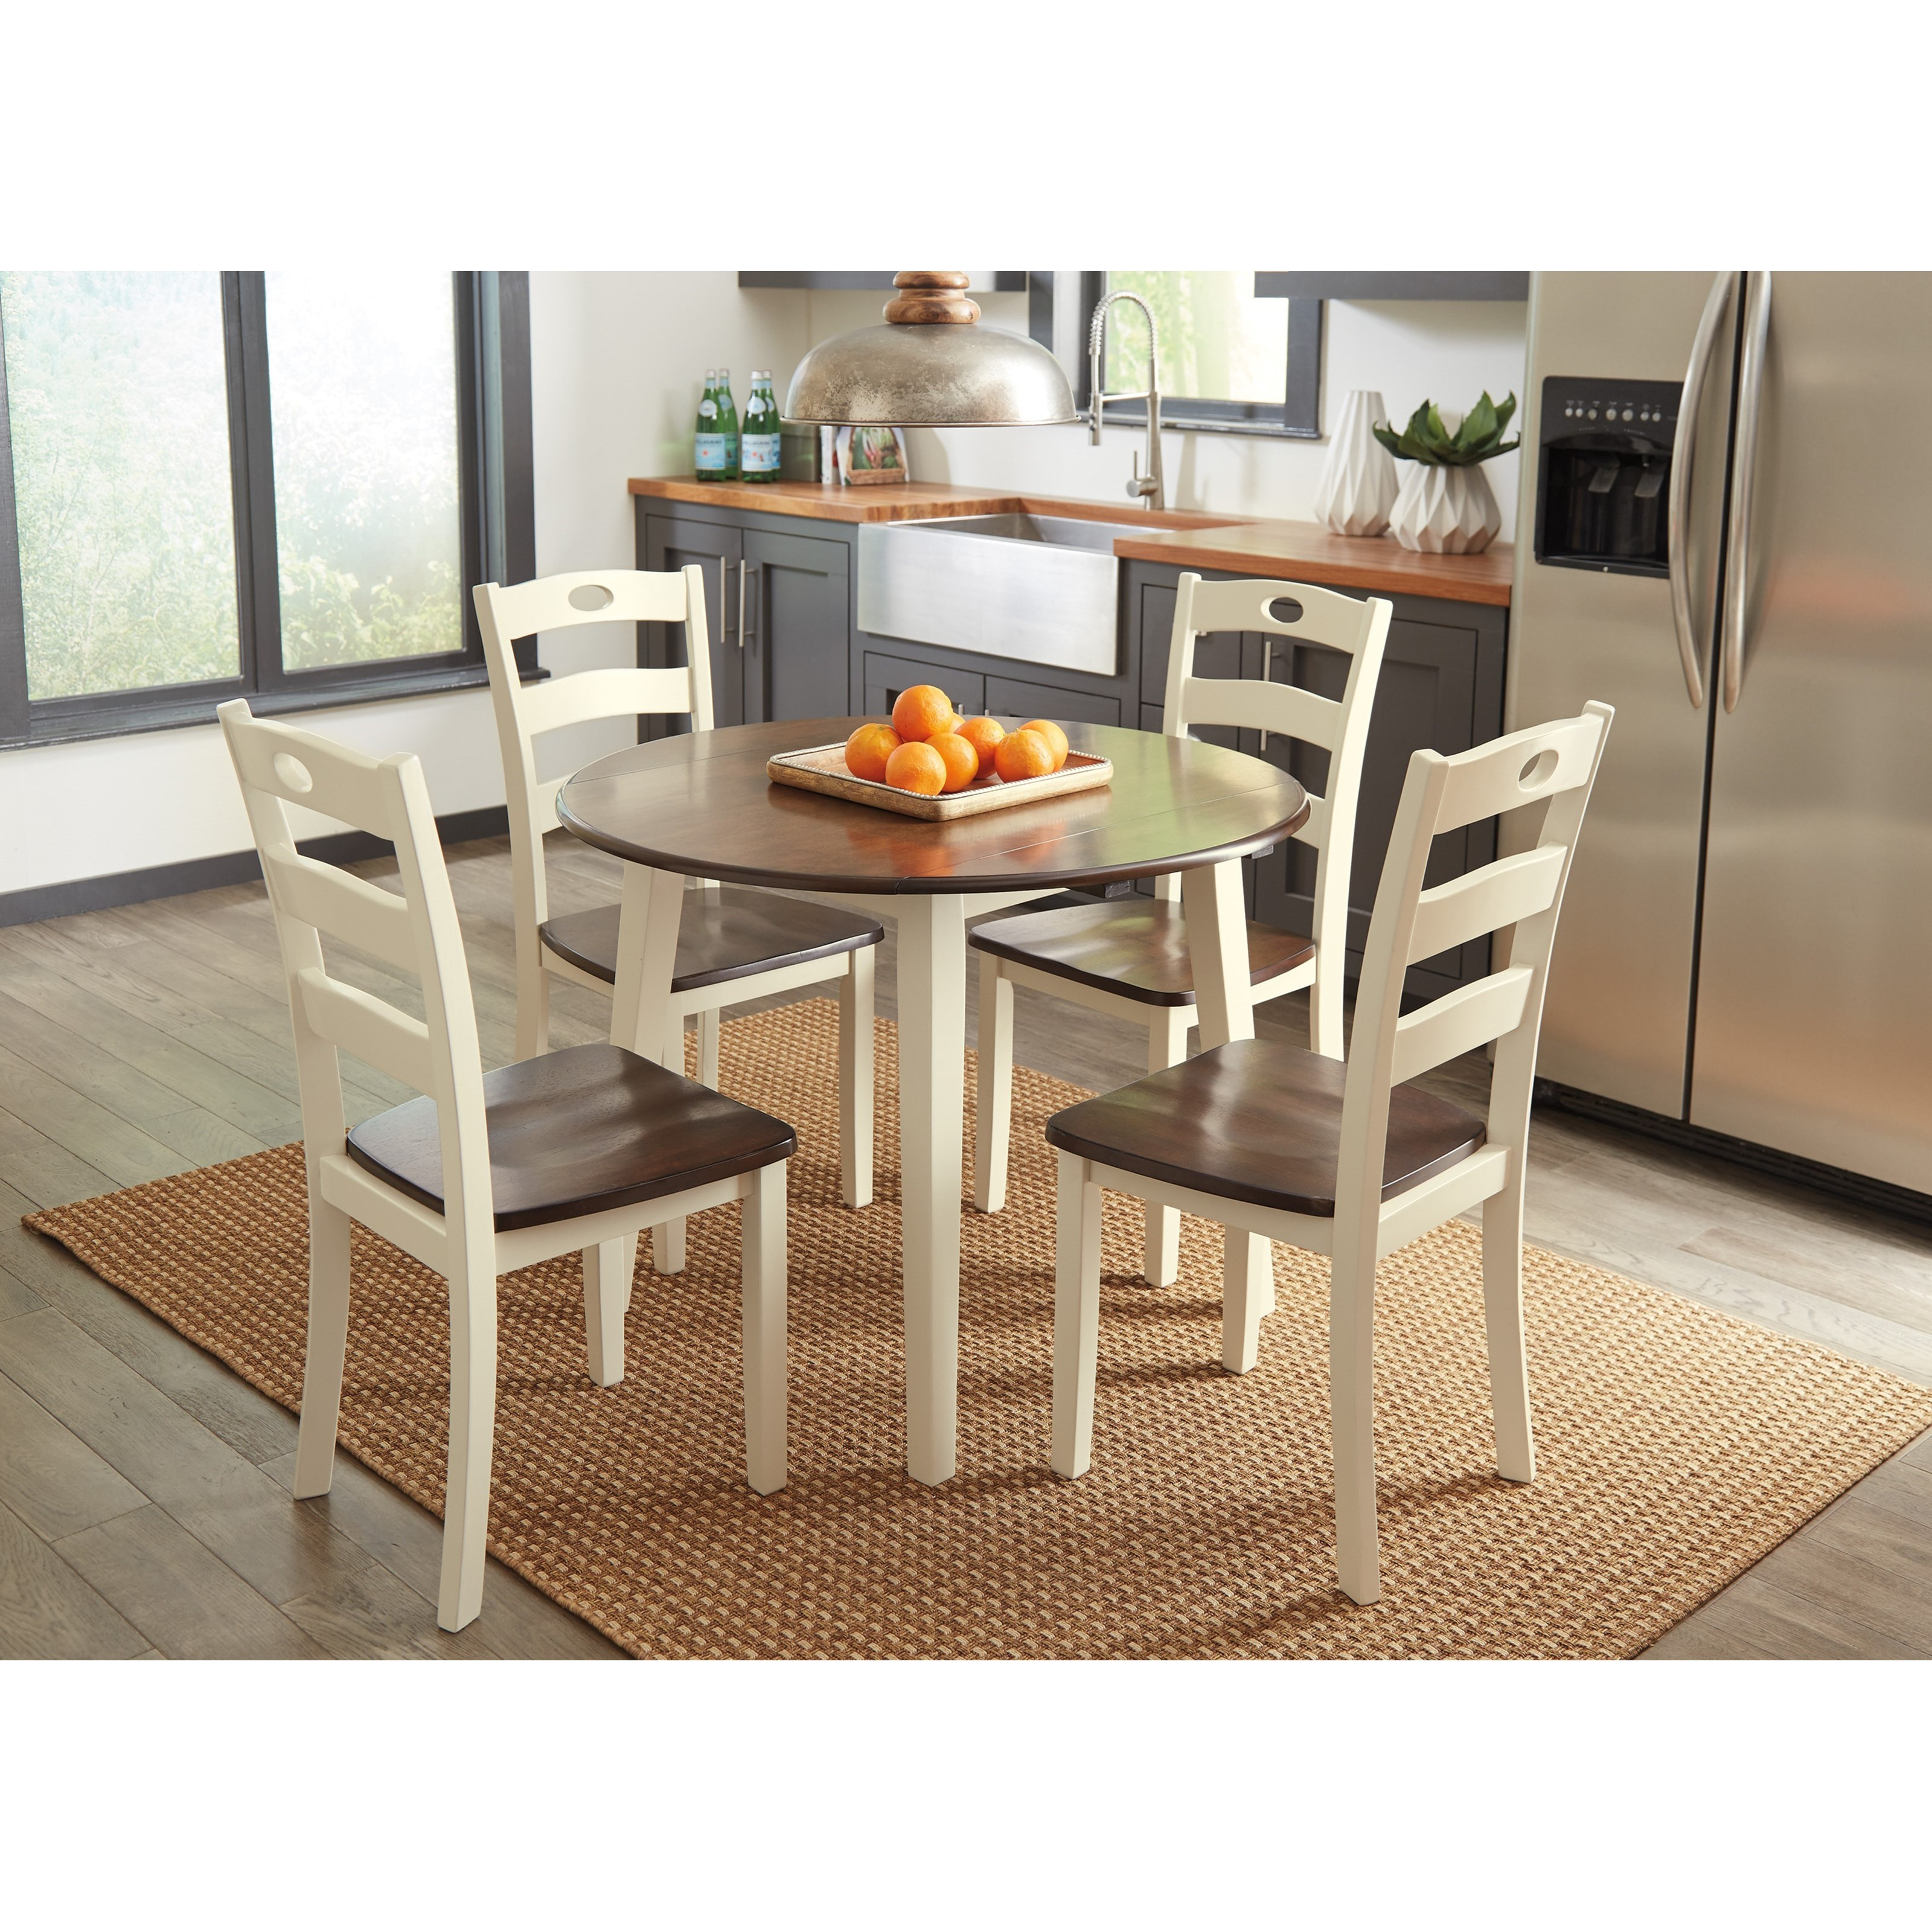 Round Dining Room Tables With Leaves: Del Sol AS Woodanville D335-15 Two-Tone Finish Round